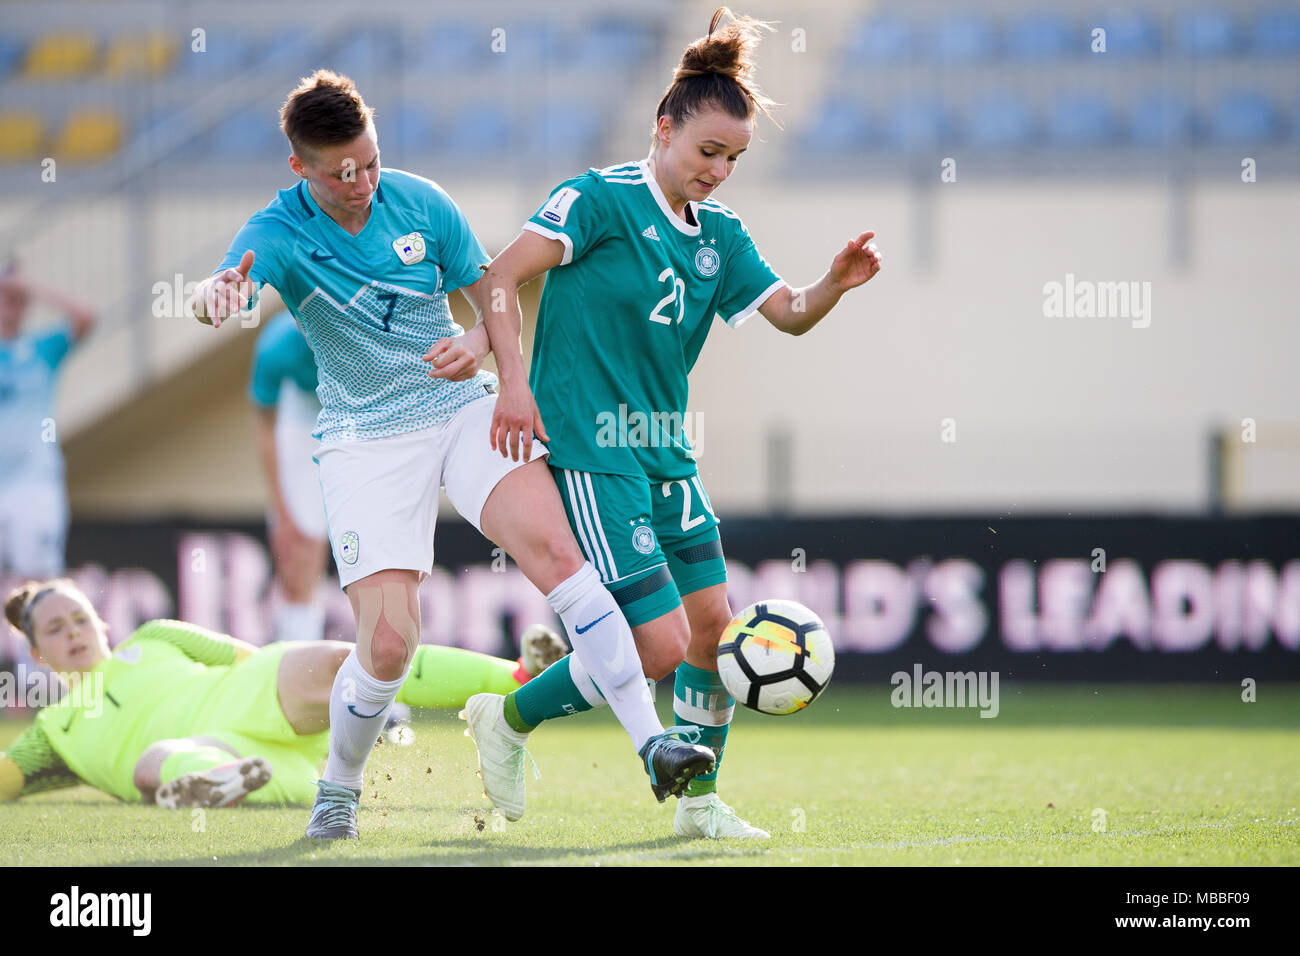 Wonderful Europe World Cup 2018 - domzale-slovenia-10th-apr-2018-10-april-2018-slovenia-domzale-soccer-womens-world-cup-qualification-europe-group-stages-slovenia-vs-germany-germanys-lina-magull-and-slovenias-kristina-erman-l-vie-for-the-ball-credit-sasa-pahic-szabodpaalamy-live-news-MBBF09  Photograph_272391 .jpg